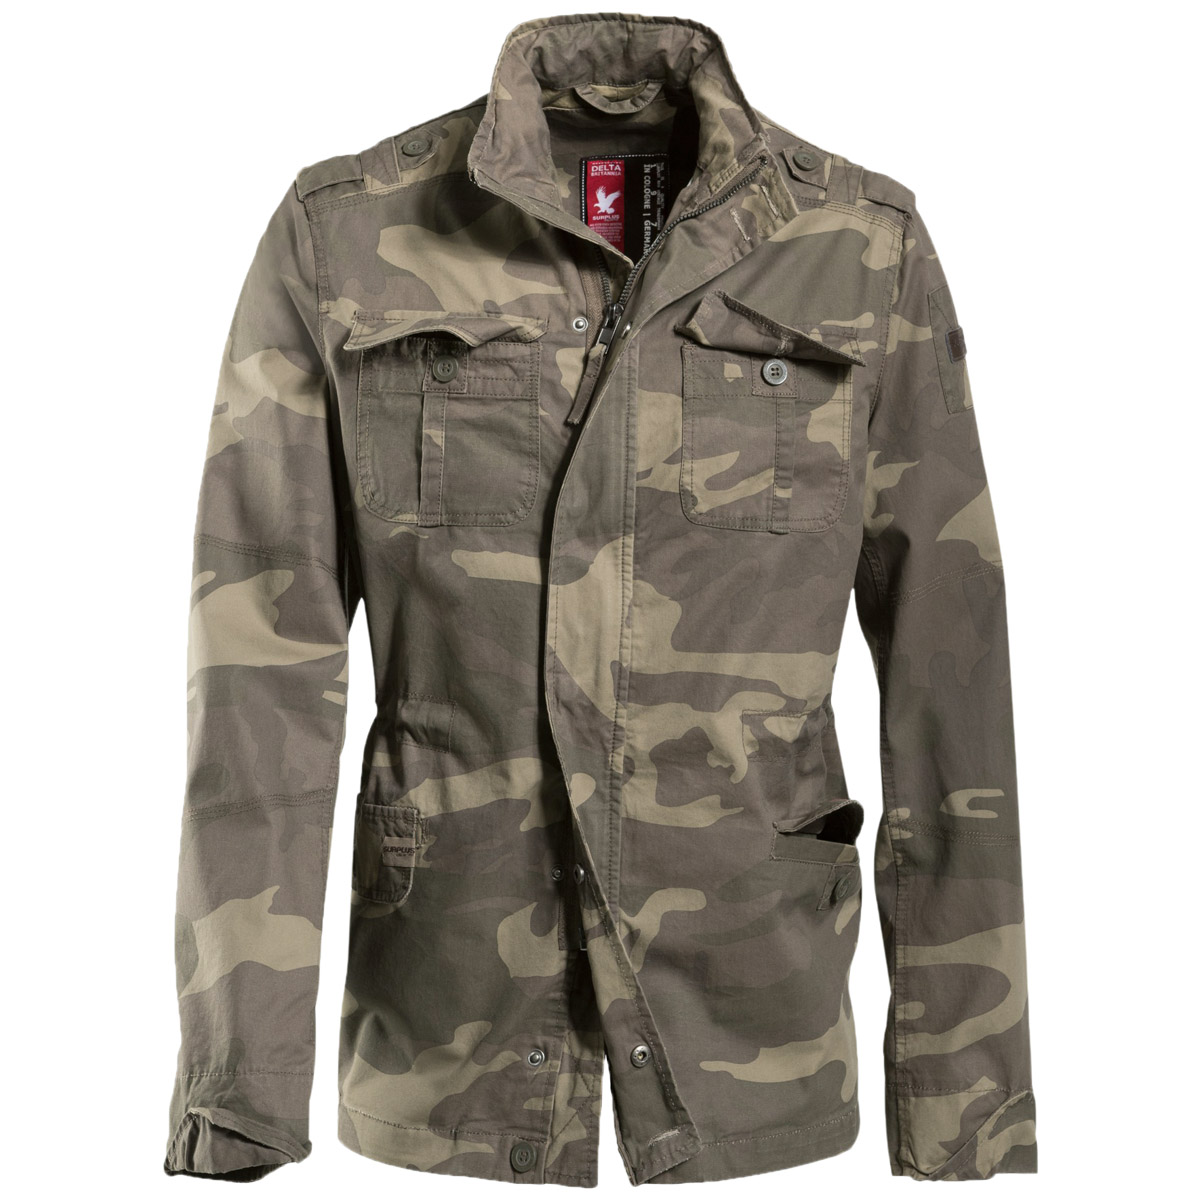 A wide range of camouflage jackets, military jackets, field parkas and army coats, in a variety of styles, colors and camo patterns is available only at Military 1st online store. Free shipping across the U.S.